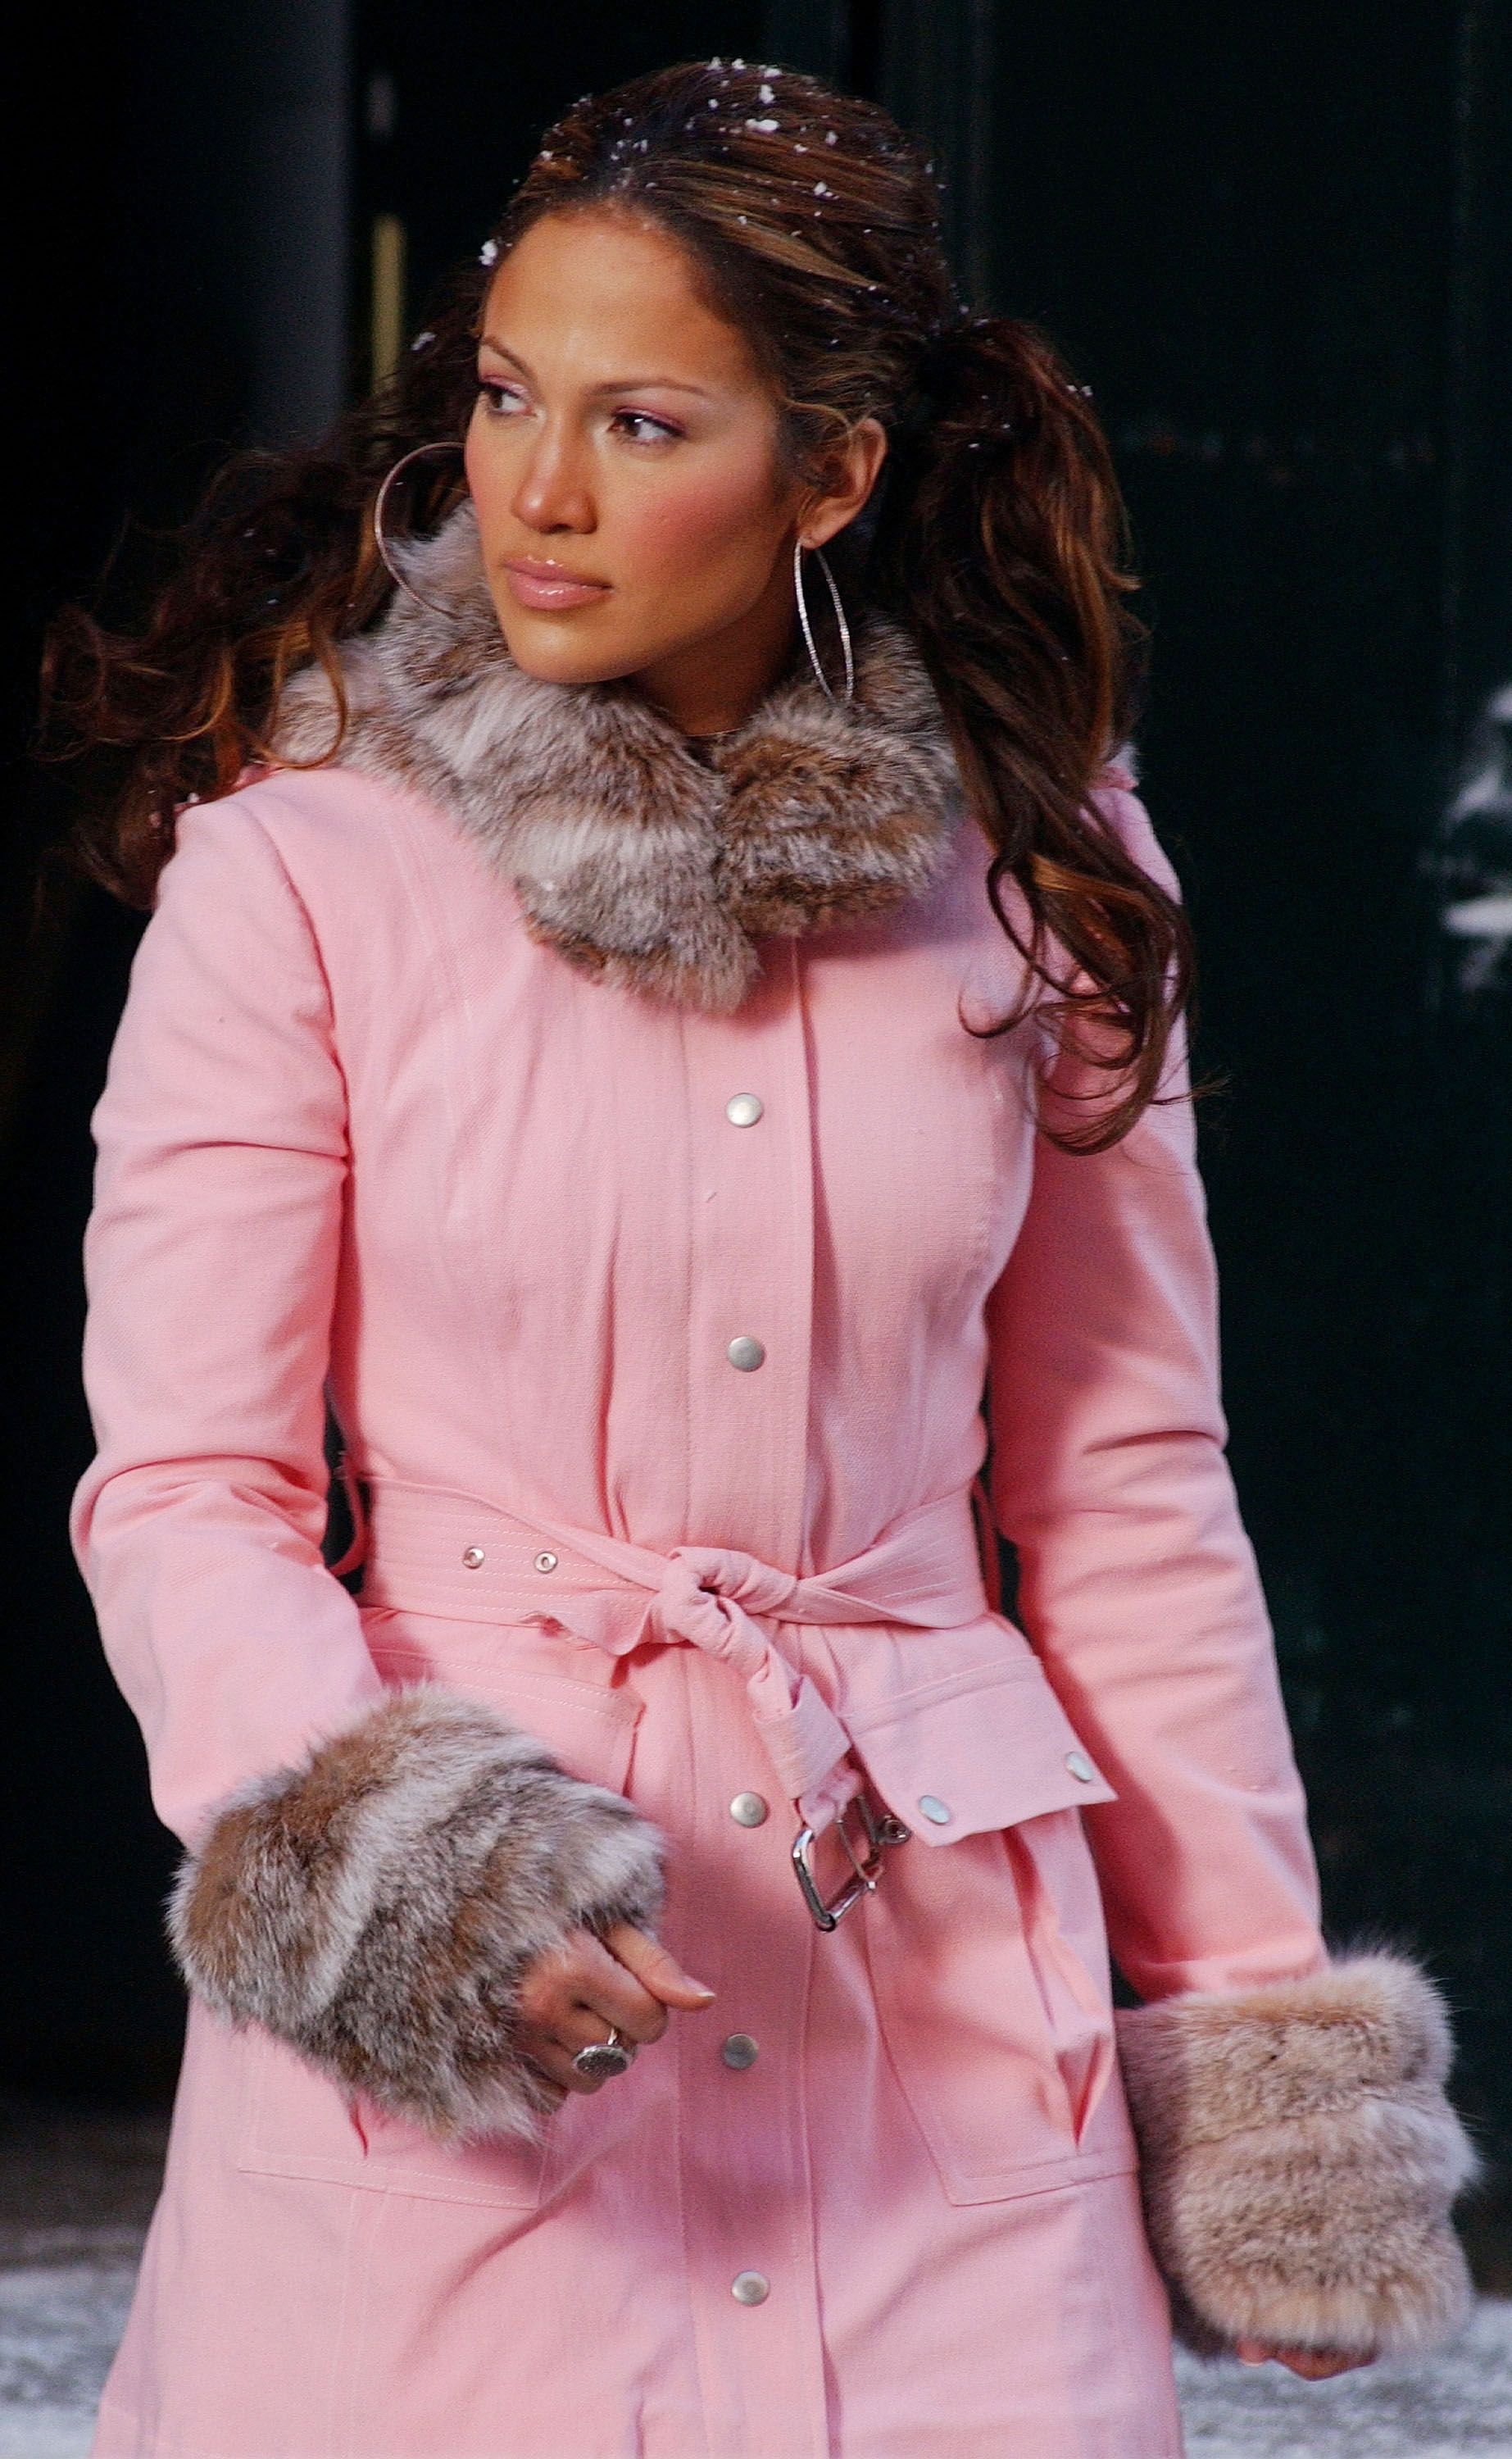 5aabe306cb5a7 13 Jennifer Lopez Outfits You Begged Your Parents For In The Early 2000s —  PHOTOS